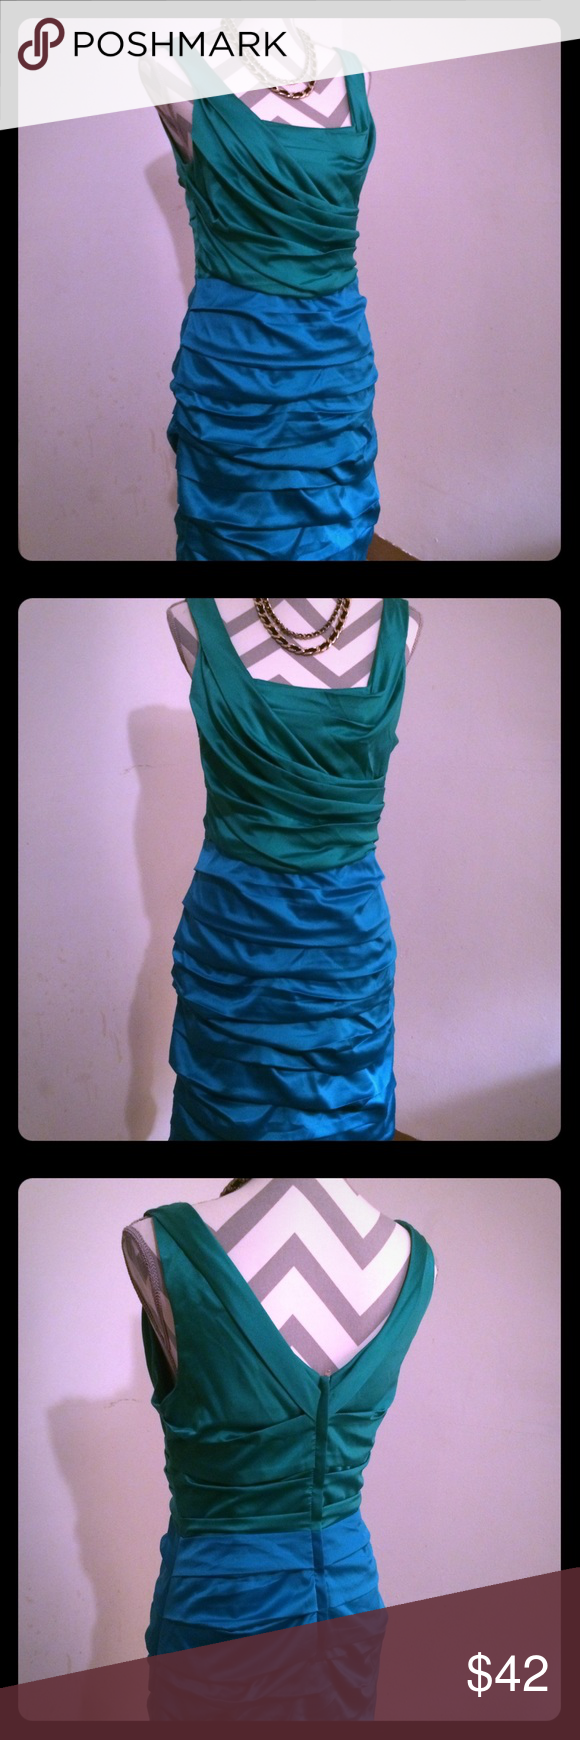 Elegant Express blue and green ruched dress. Green top, and blue bottom gives this dress an artsy and unique look by putting the two colors in one dress.  Nice lines, fitted party dress.  Size 10,  zip closure down back. Express Dresses